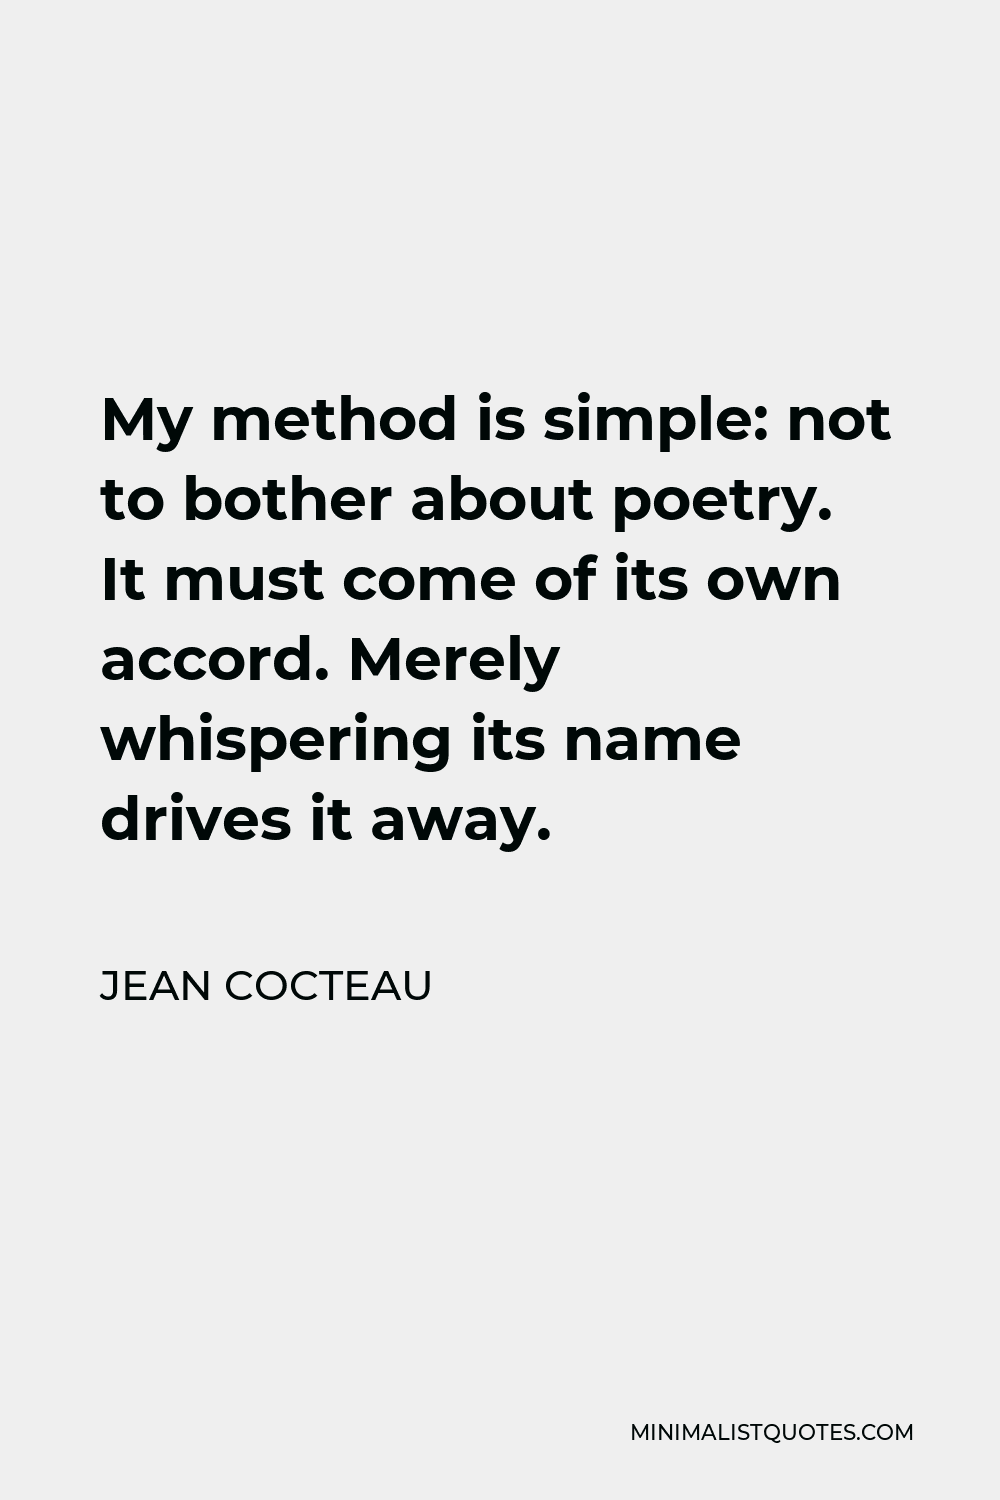 Jean Cocteau Quote - My method is simple: not to bother about poetry. It must come of its own accord. Merely whispering its name drives it away.